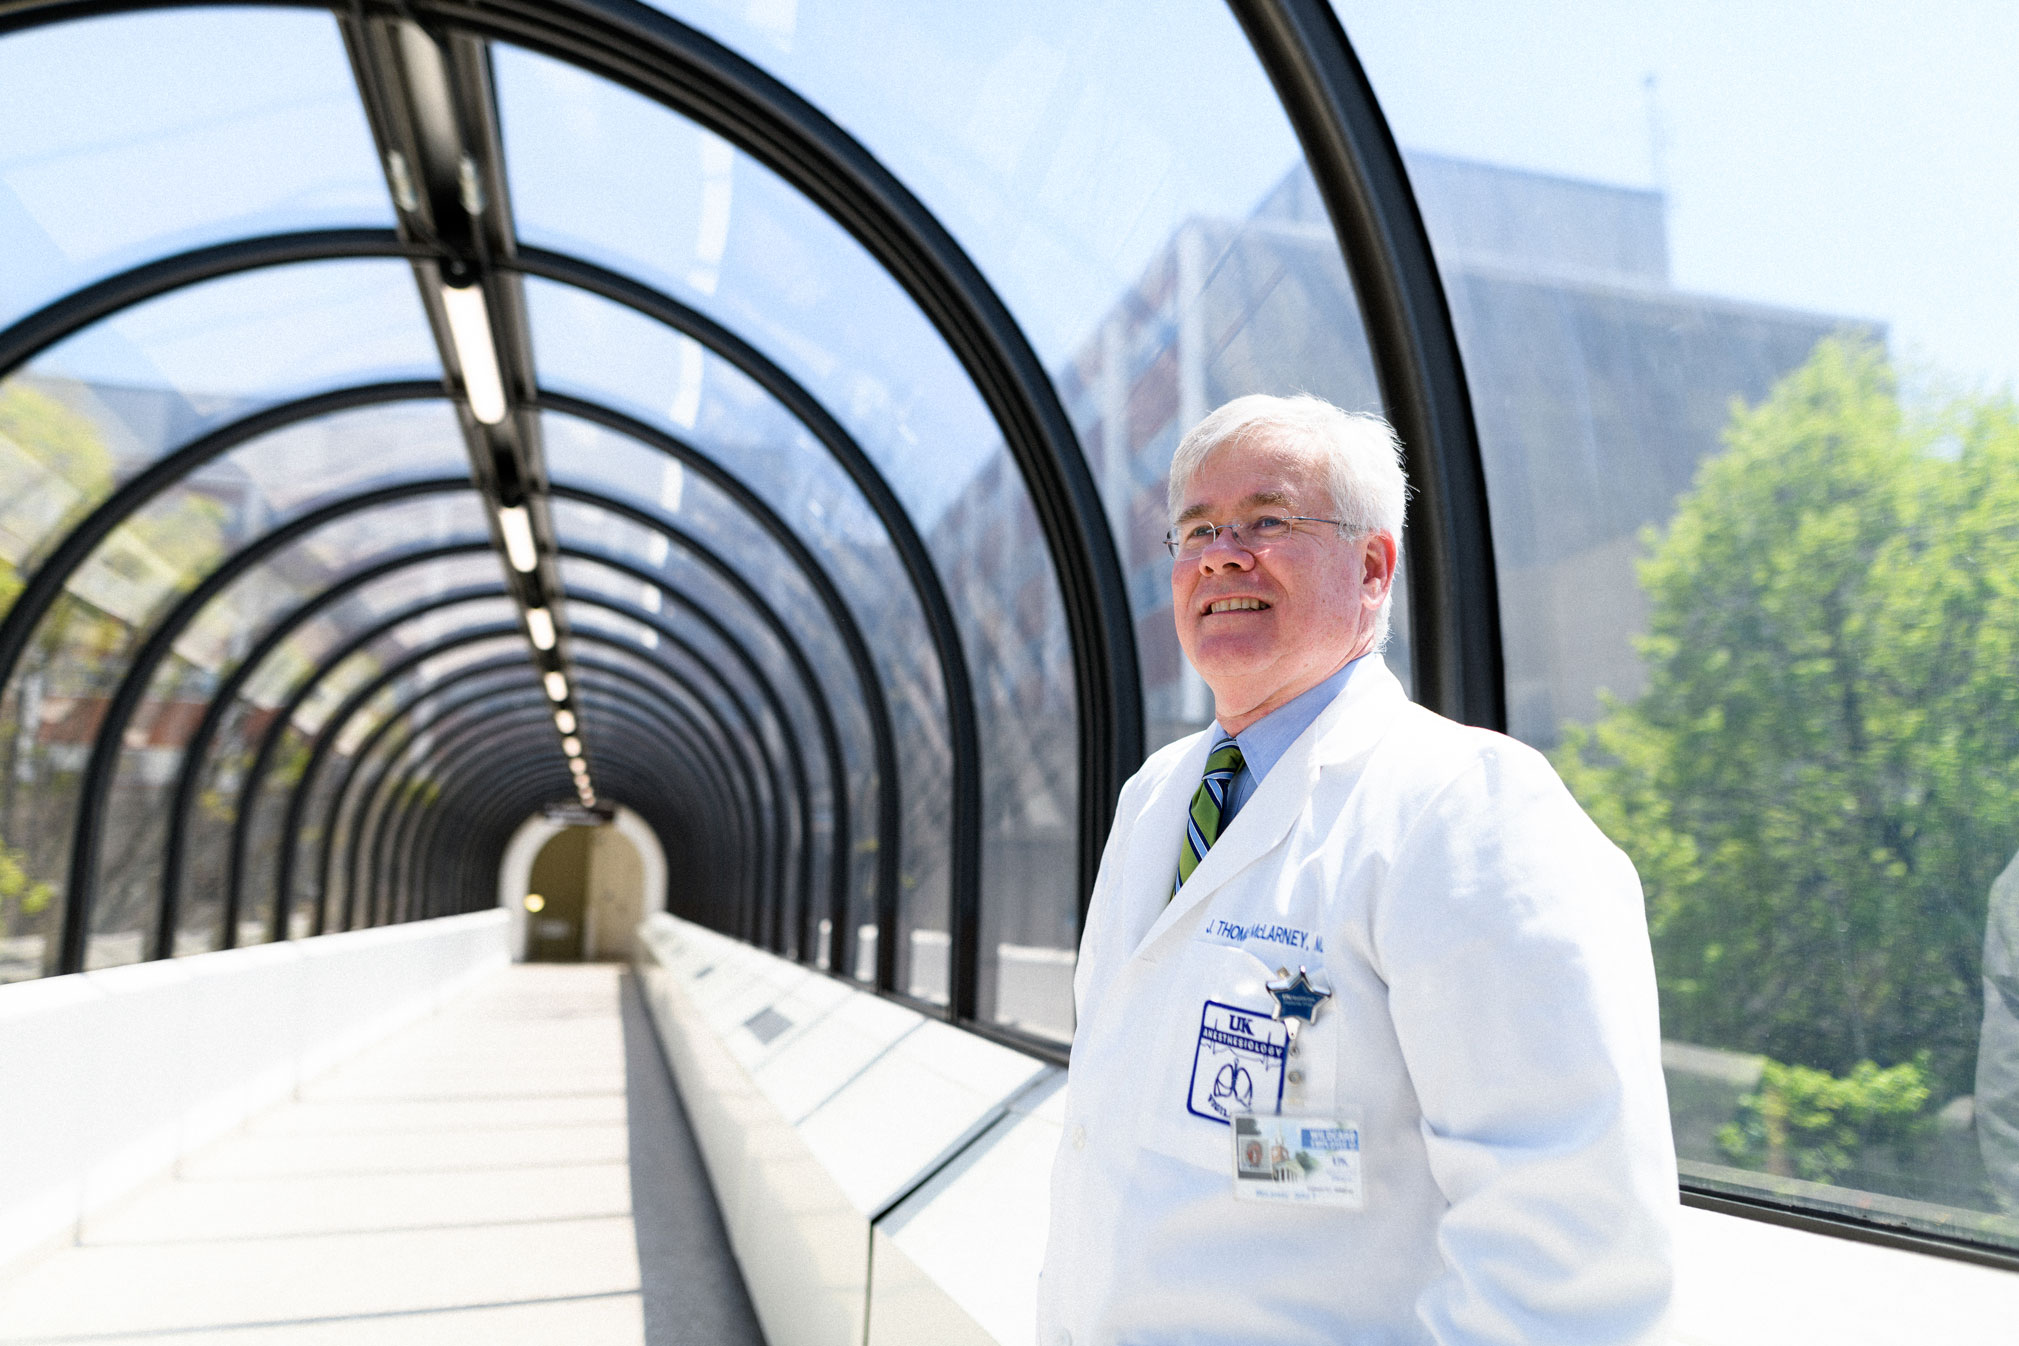 Dr. McLarney reflects on his heart attack on a walkway at UK HealthCare.